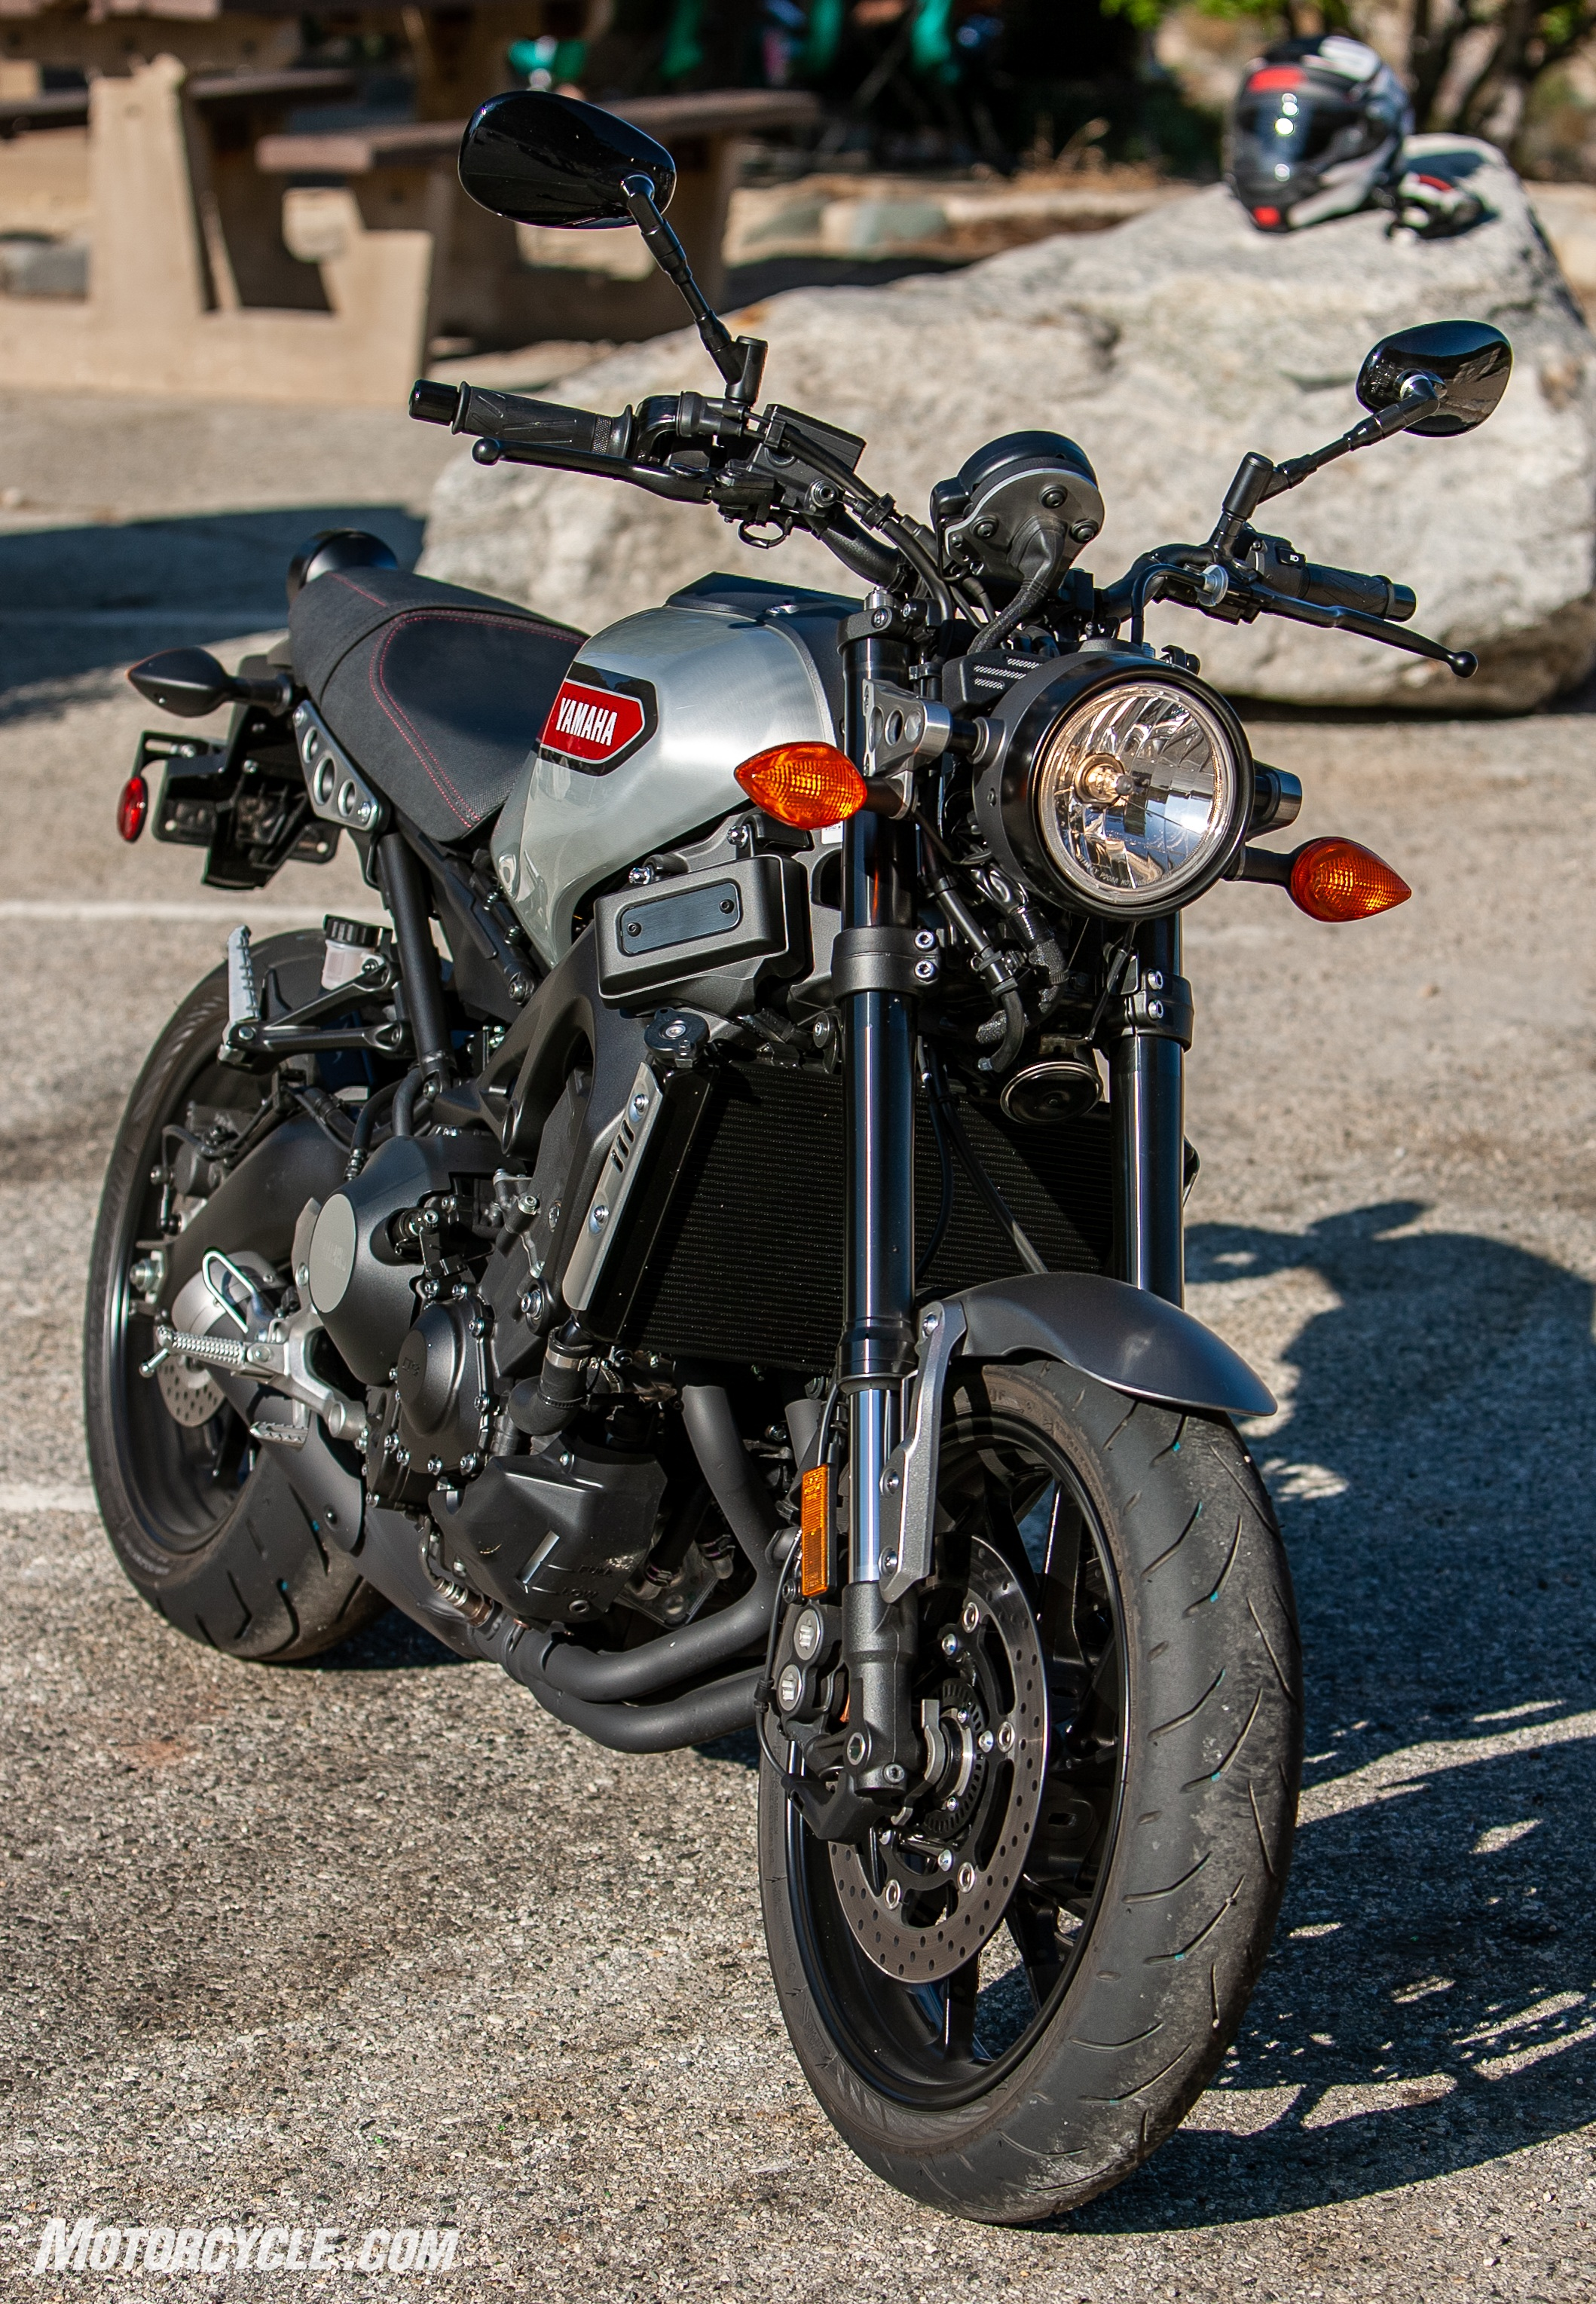 090619 Streettracker Monster Shootout Yamaha Xsr900 Ebb0562 Hdr Motorcycle Com